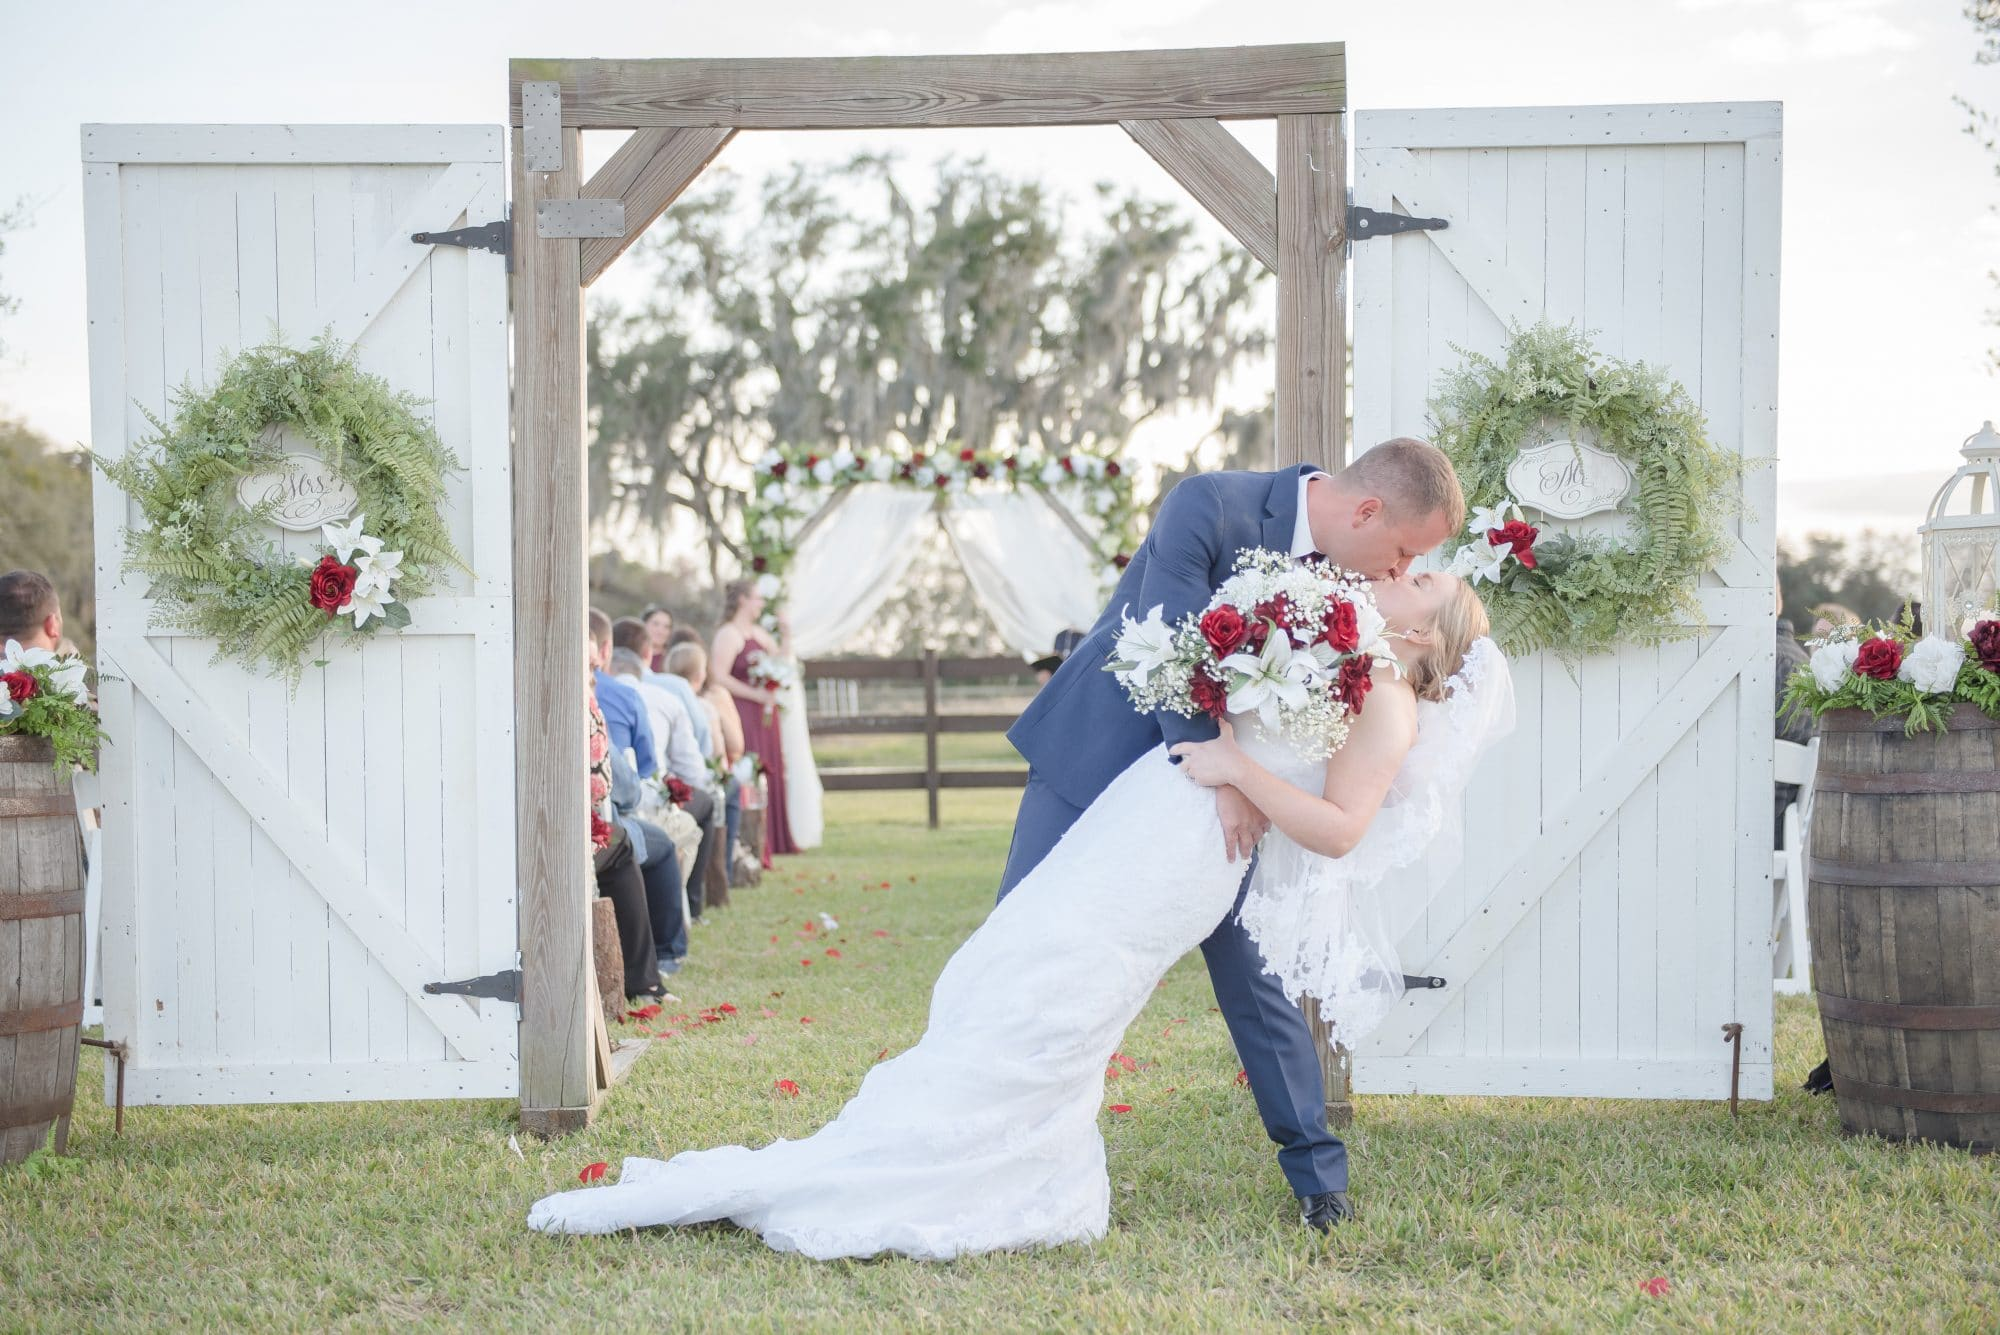 Todd dipping Brittany for a kiss in front of rustic freestanding door